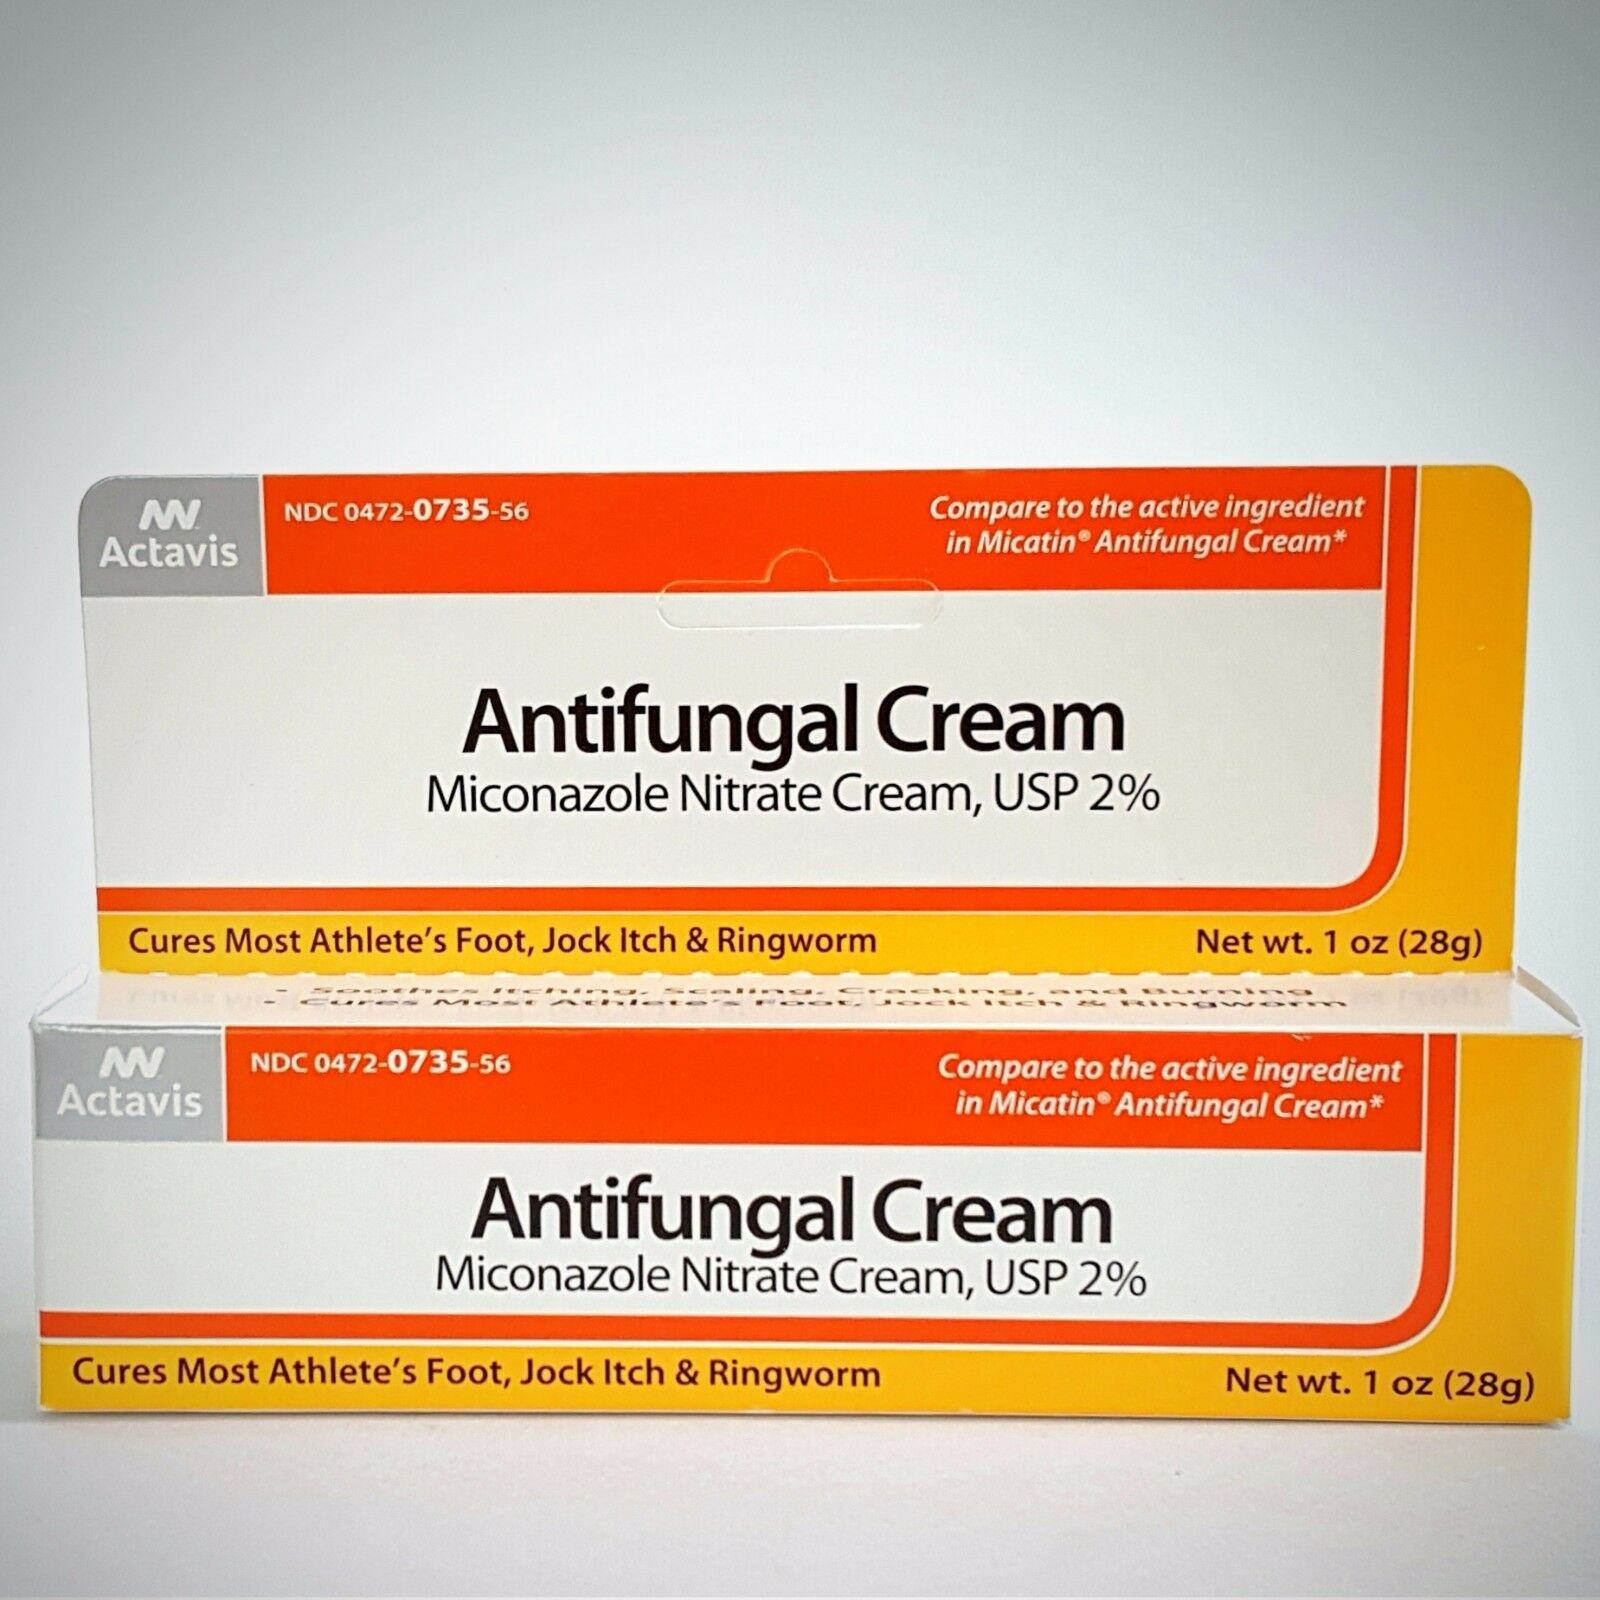 Miconazole Nitrate 2% Antifungal Cream (Compare To Micatin